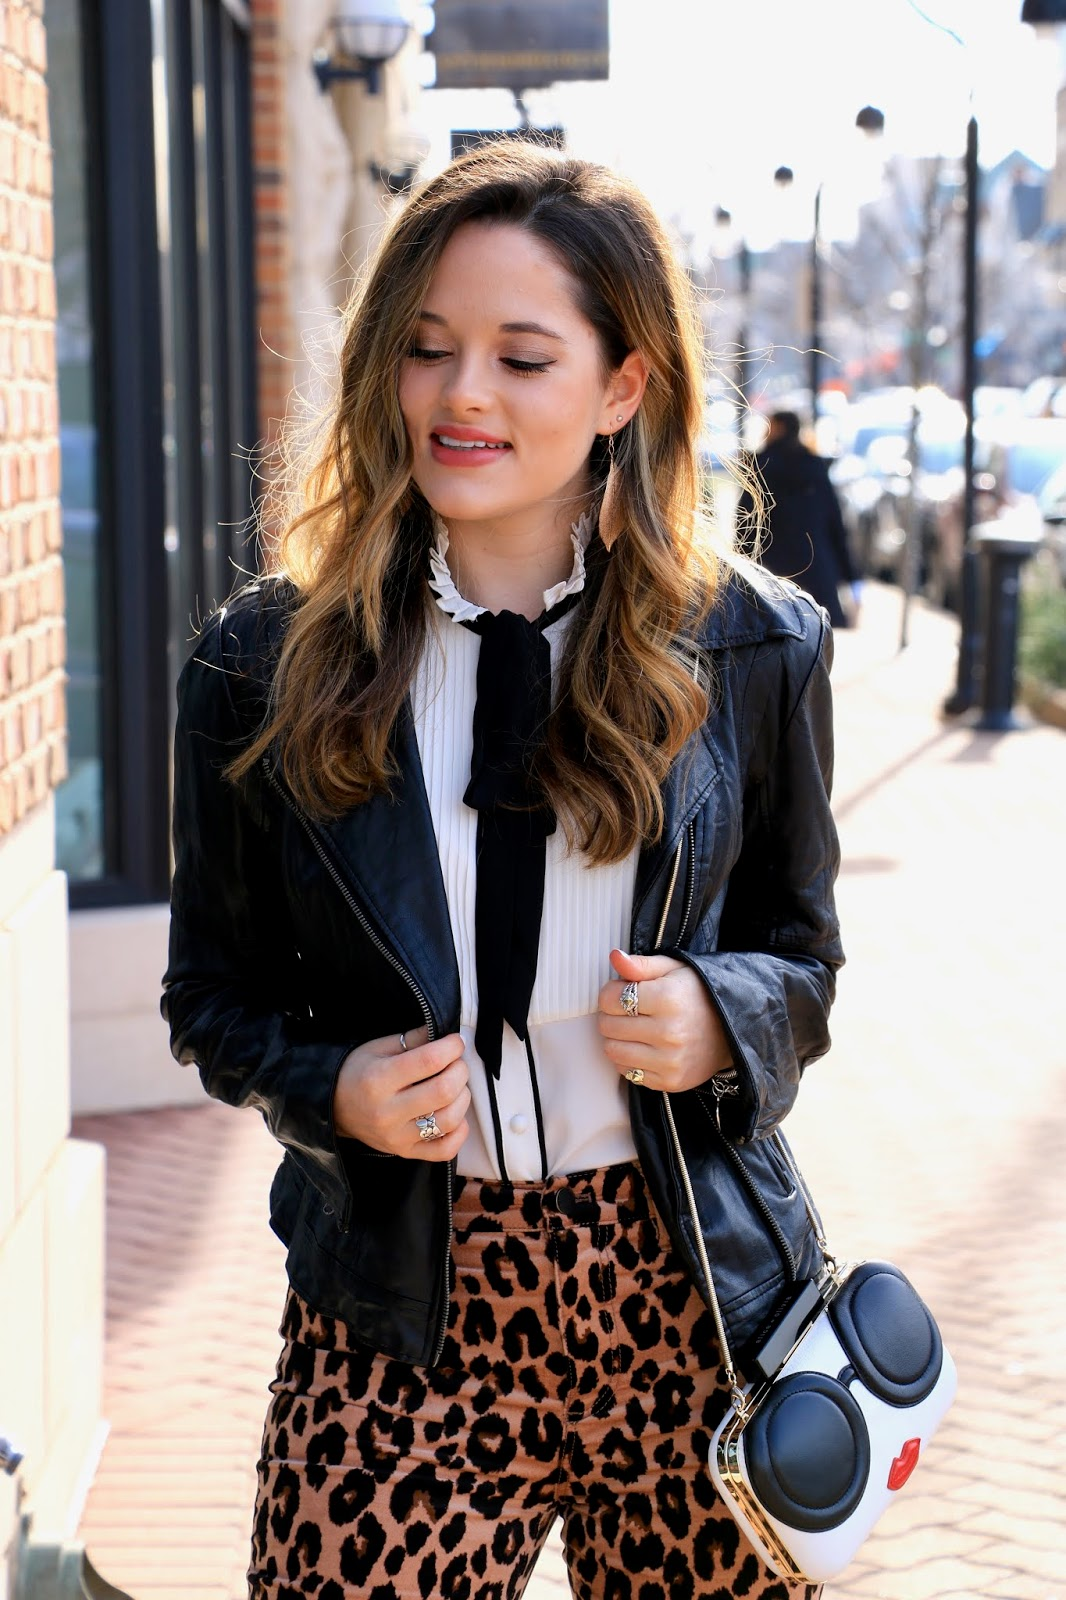 Nyc fashion blogger Kathleen Harper's outfits